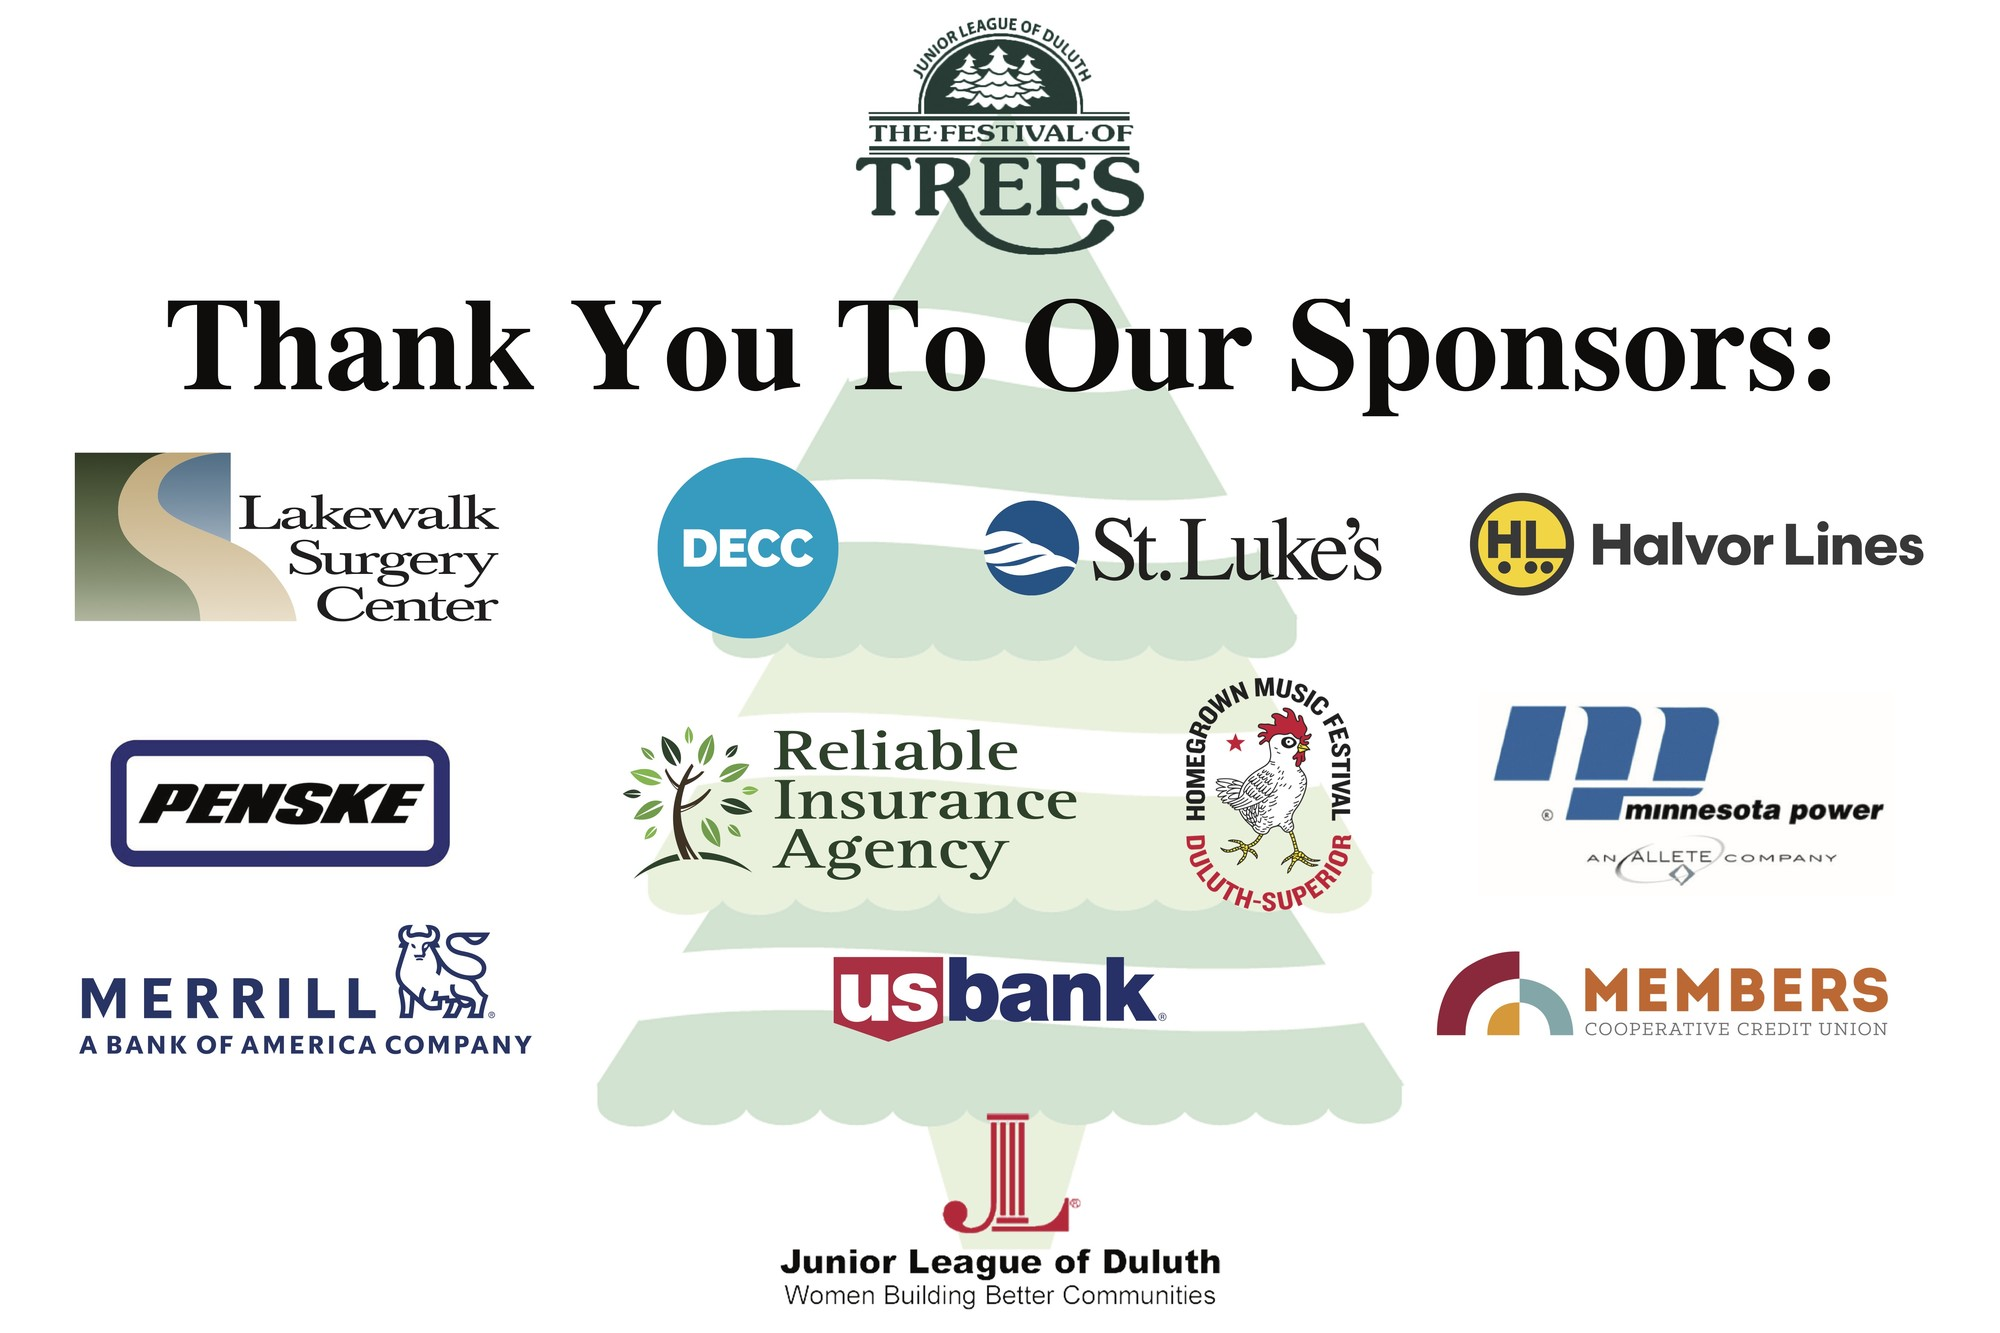 The JLD would like to thank our Festival of Trees sponsors: Lakewalk Surgery Center, DECC, Halvor Lines, Homegrown Music Festival, Members Cooperative Credit Union, Merrill Bank of America, Minnesota Power, Penske Truck Rental, Reliable Insurance Agency, St. Luke's, and U.S. Bank.